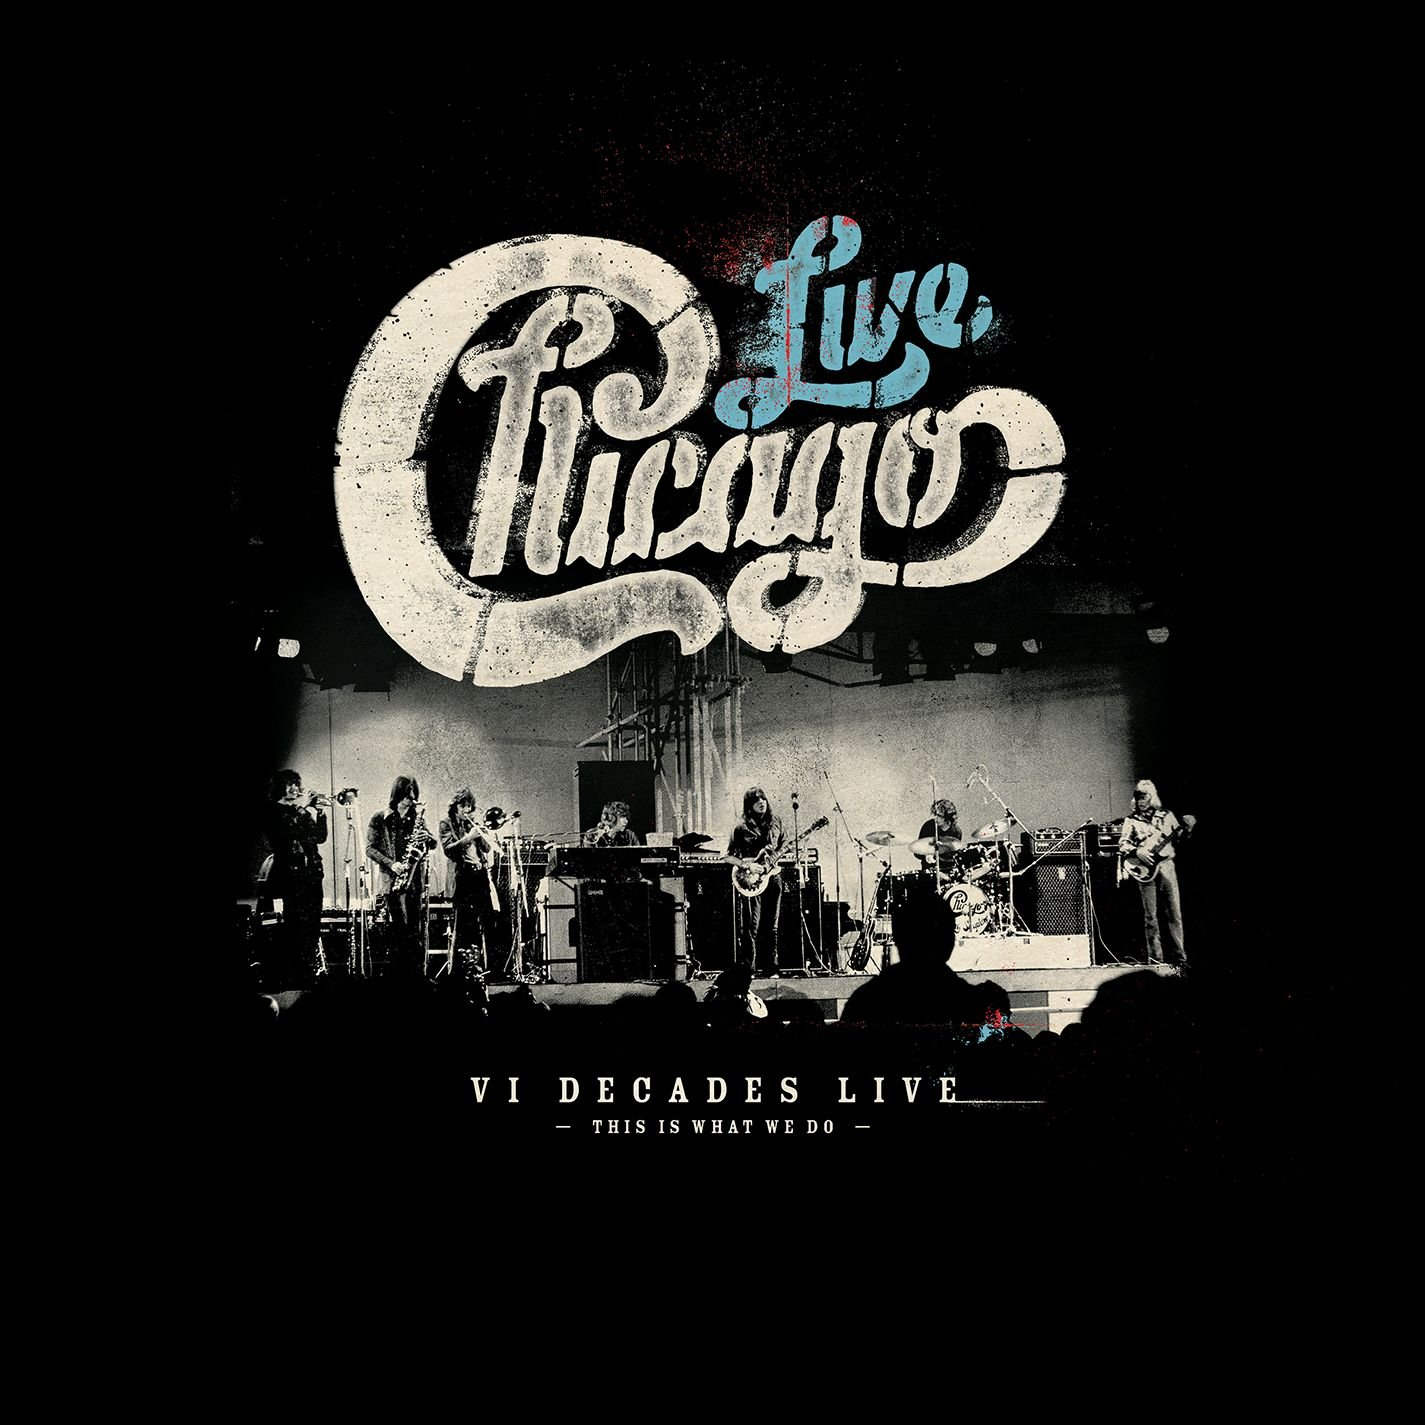 Chicago: VI Decades Live (4CD/1DVD) by Rhino Records